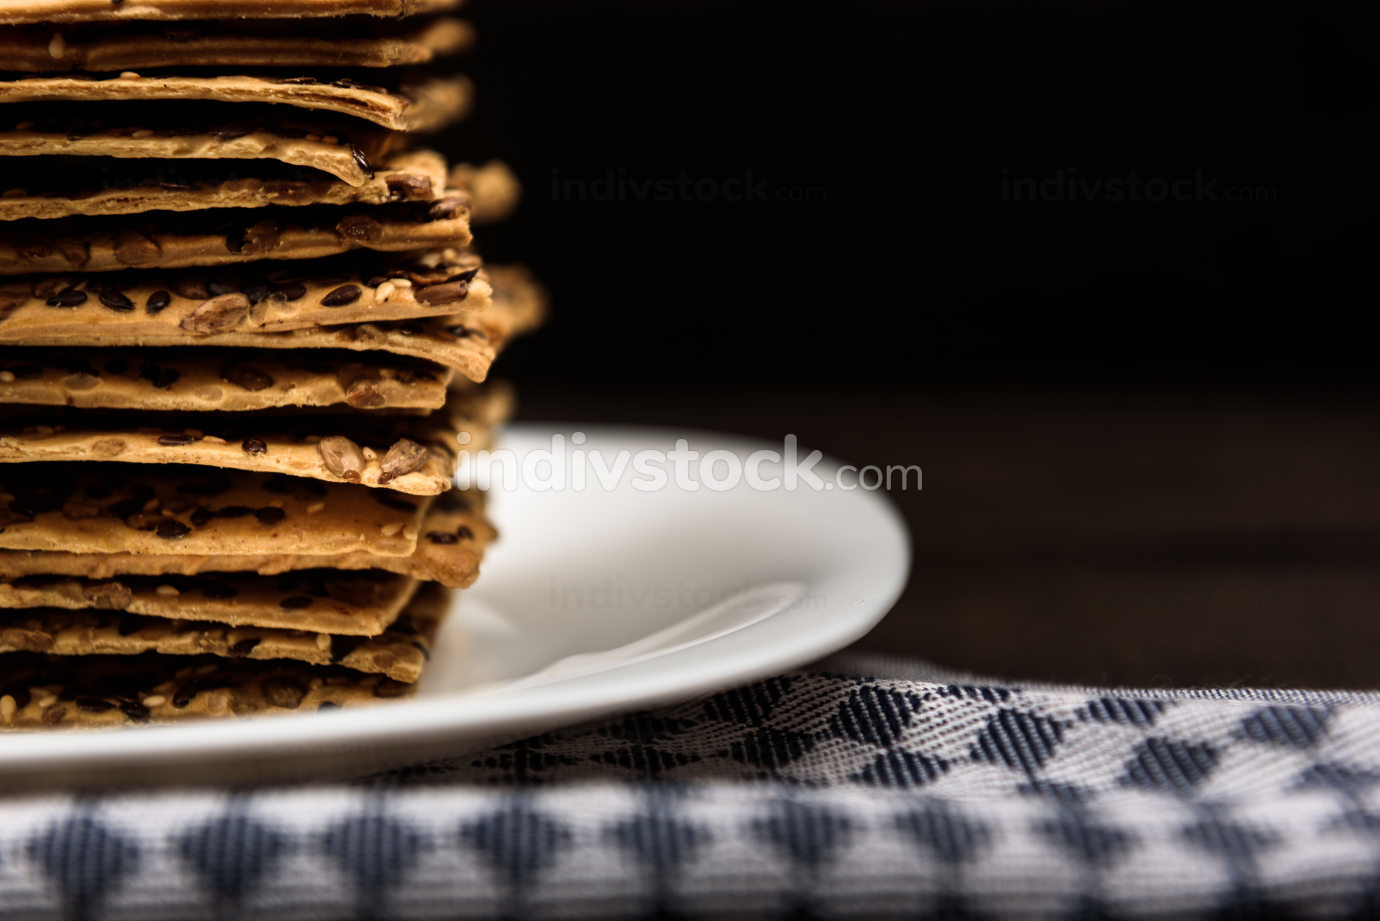 cookies with sunflower seeds